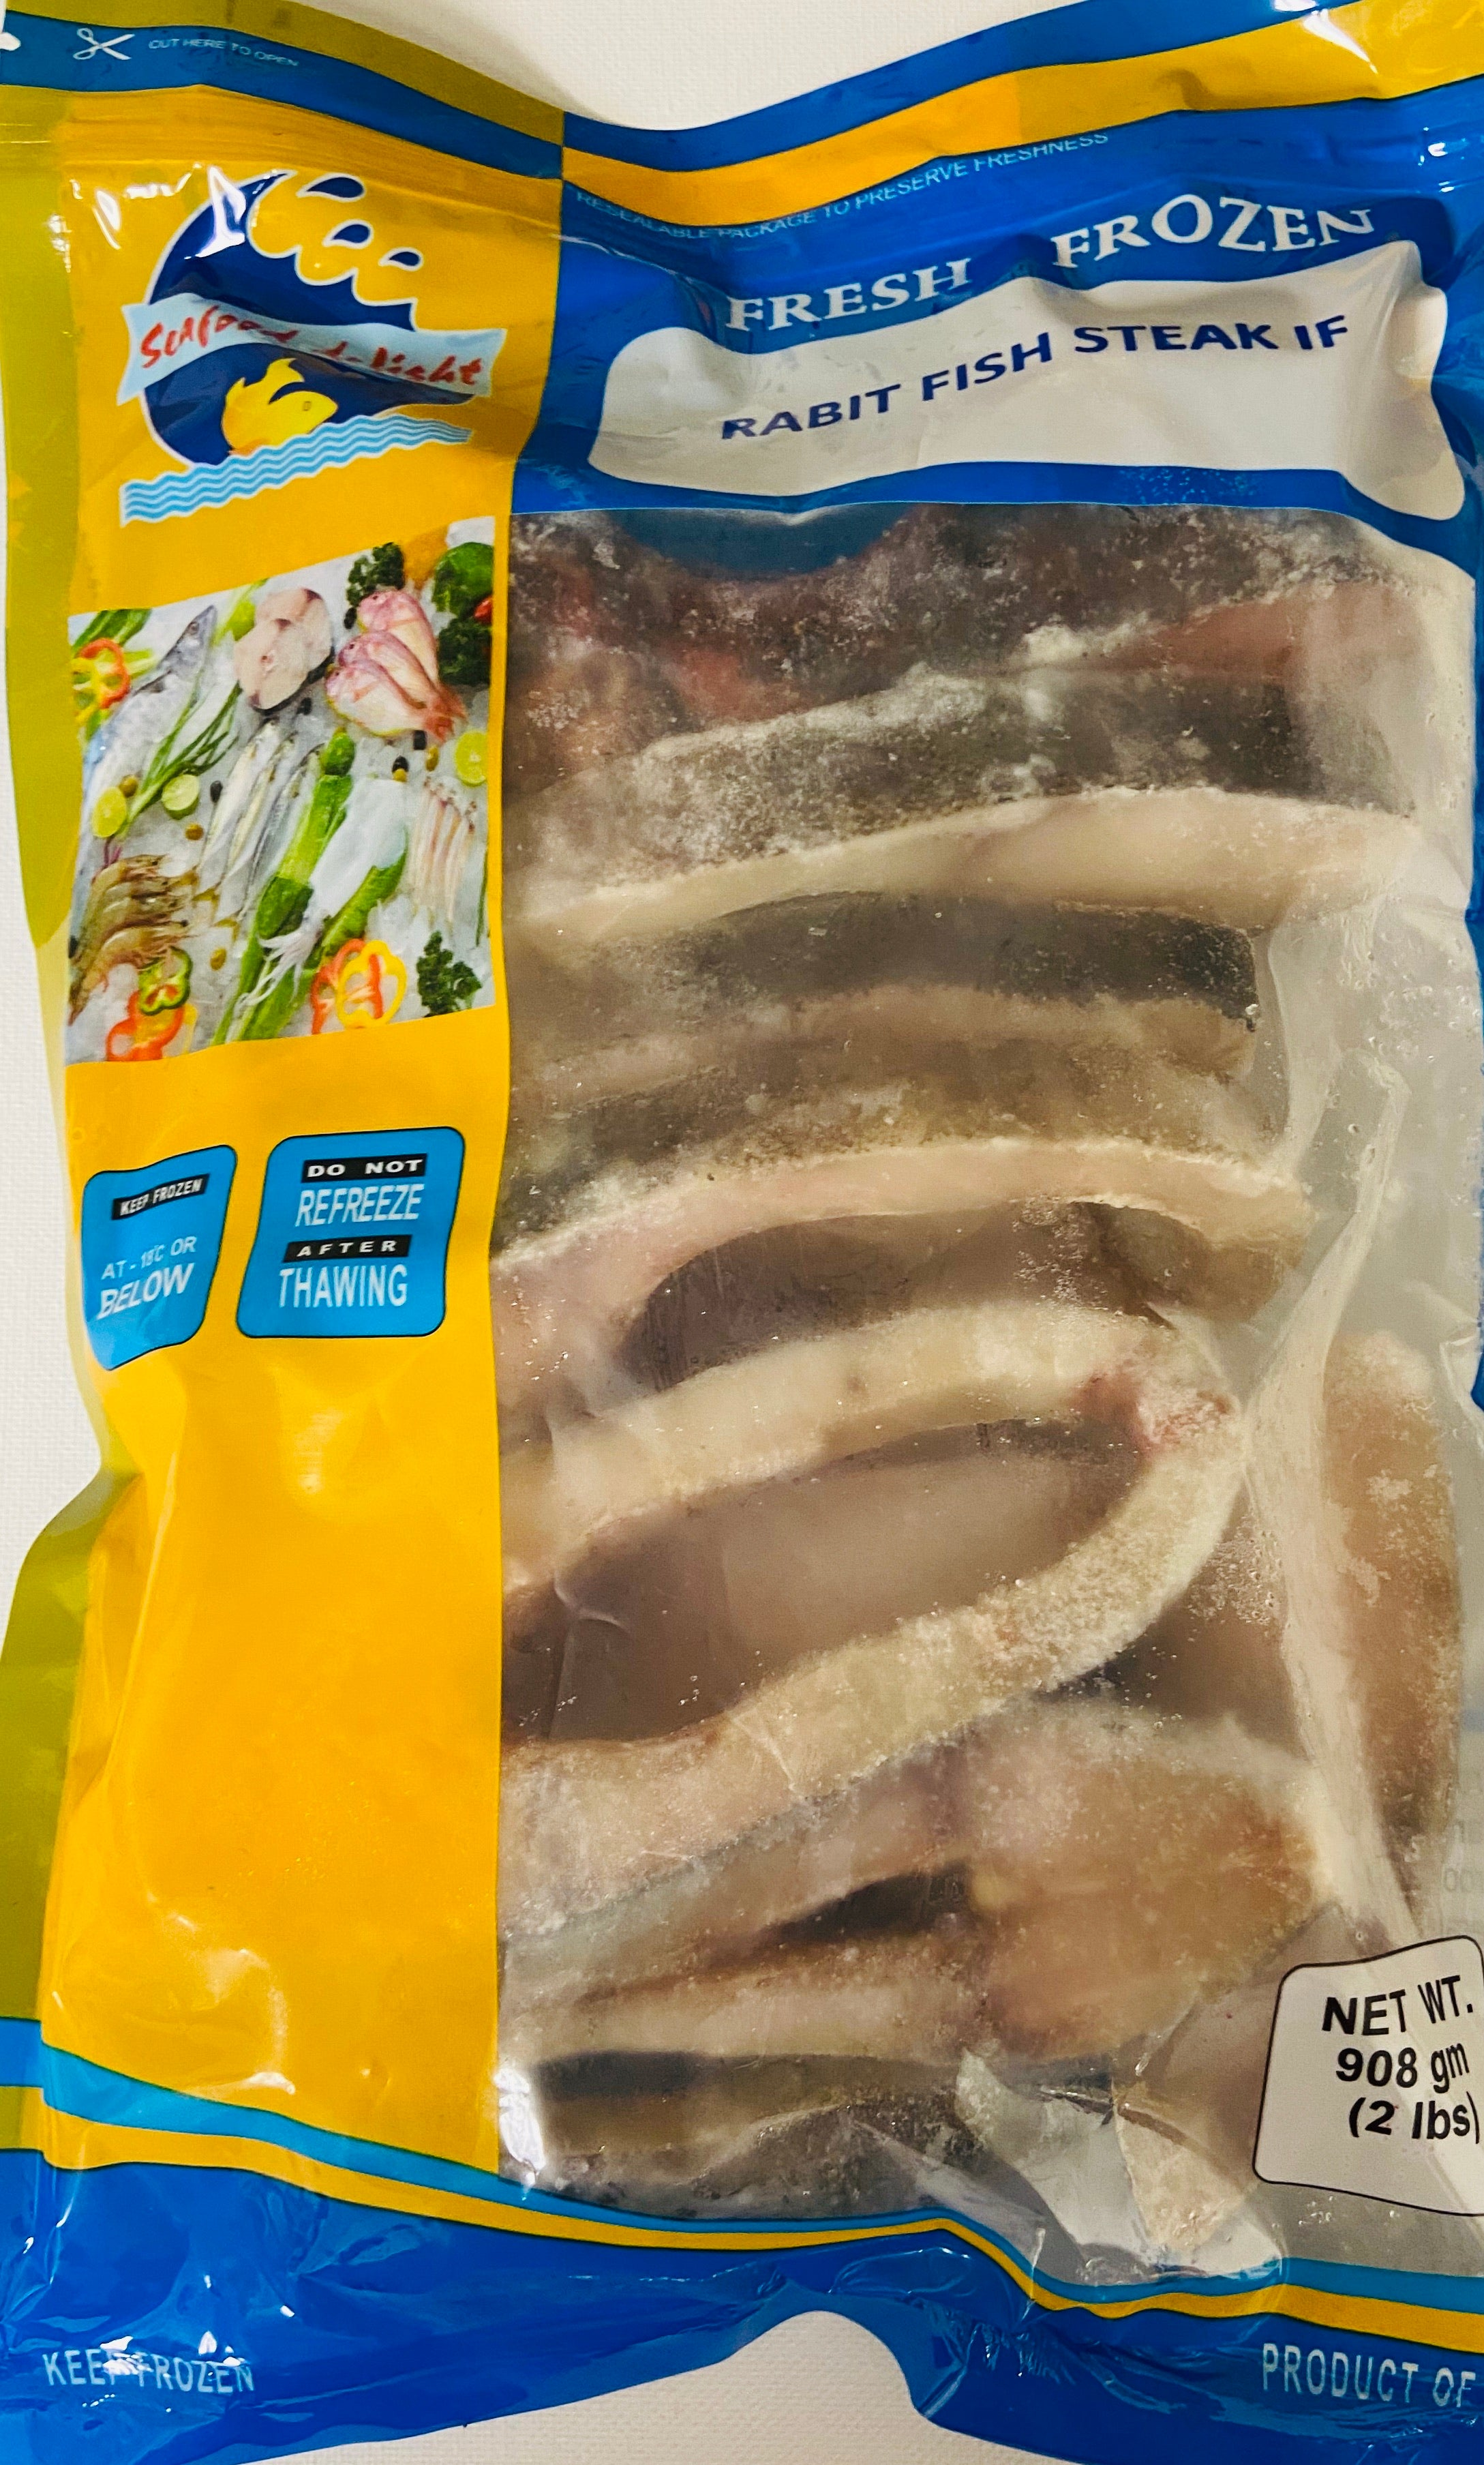 Rabit Fish Steak (Frozen Fish - 2 lbs)